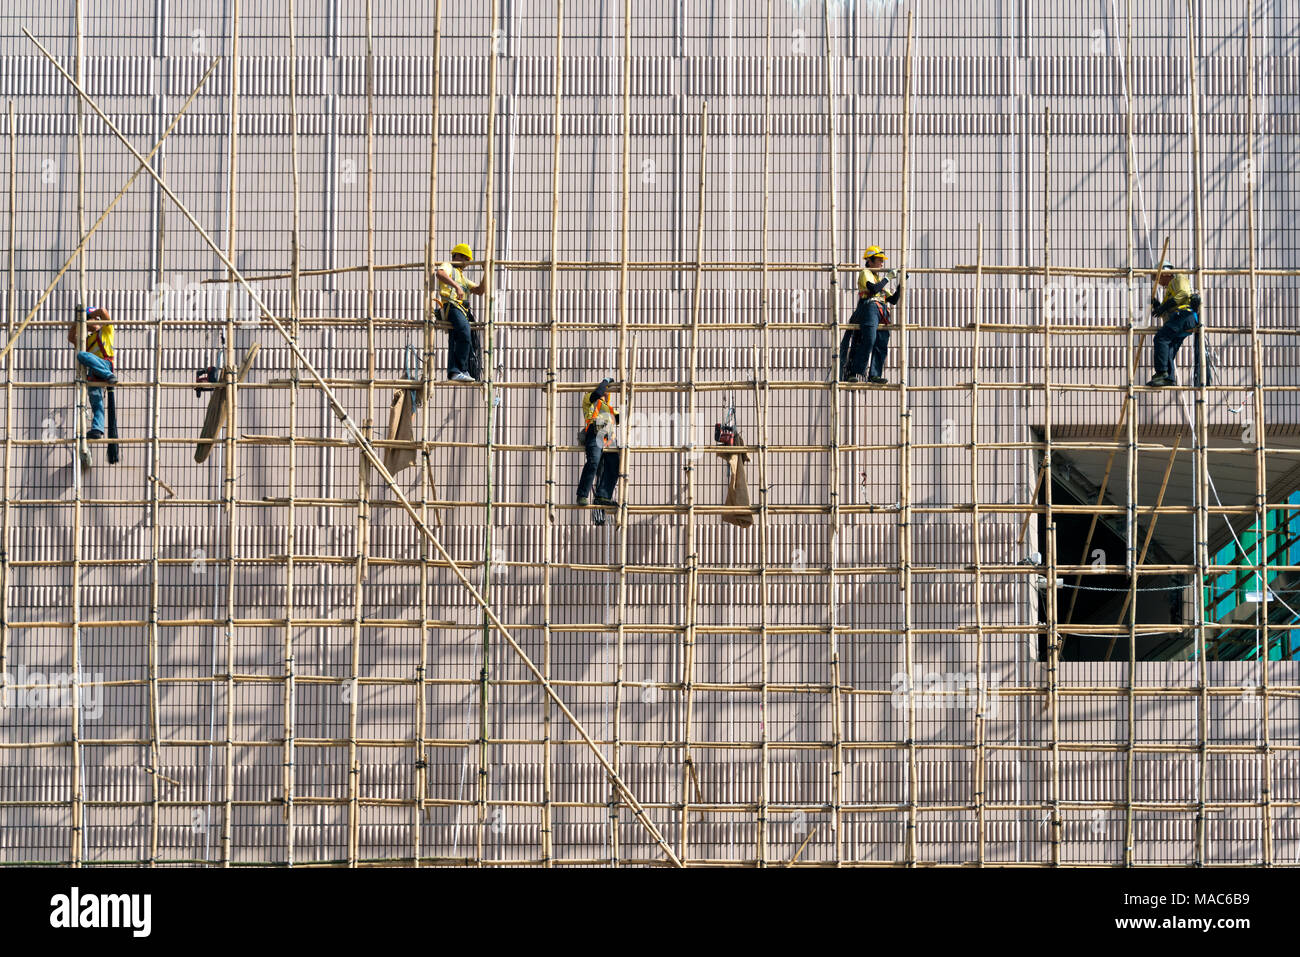 Construction workers on scaffolding outside a new construction, Hong Kong, China Stock Photo